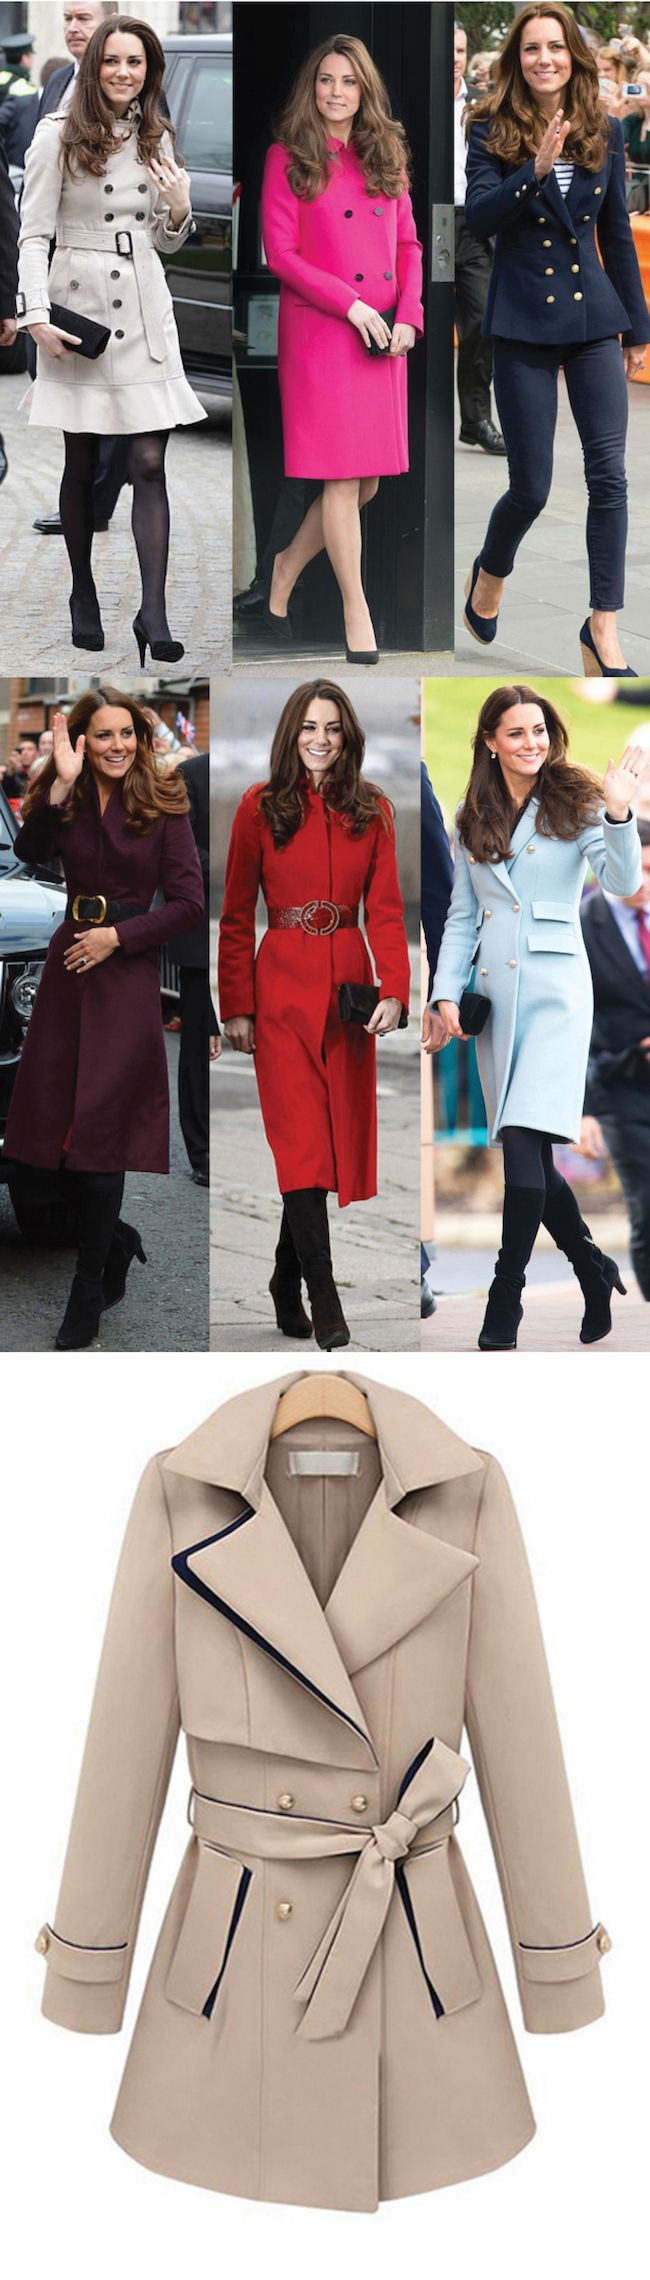 Kate Middleton Coats - I want them all!